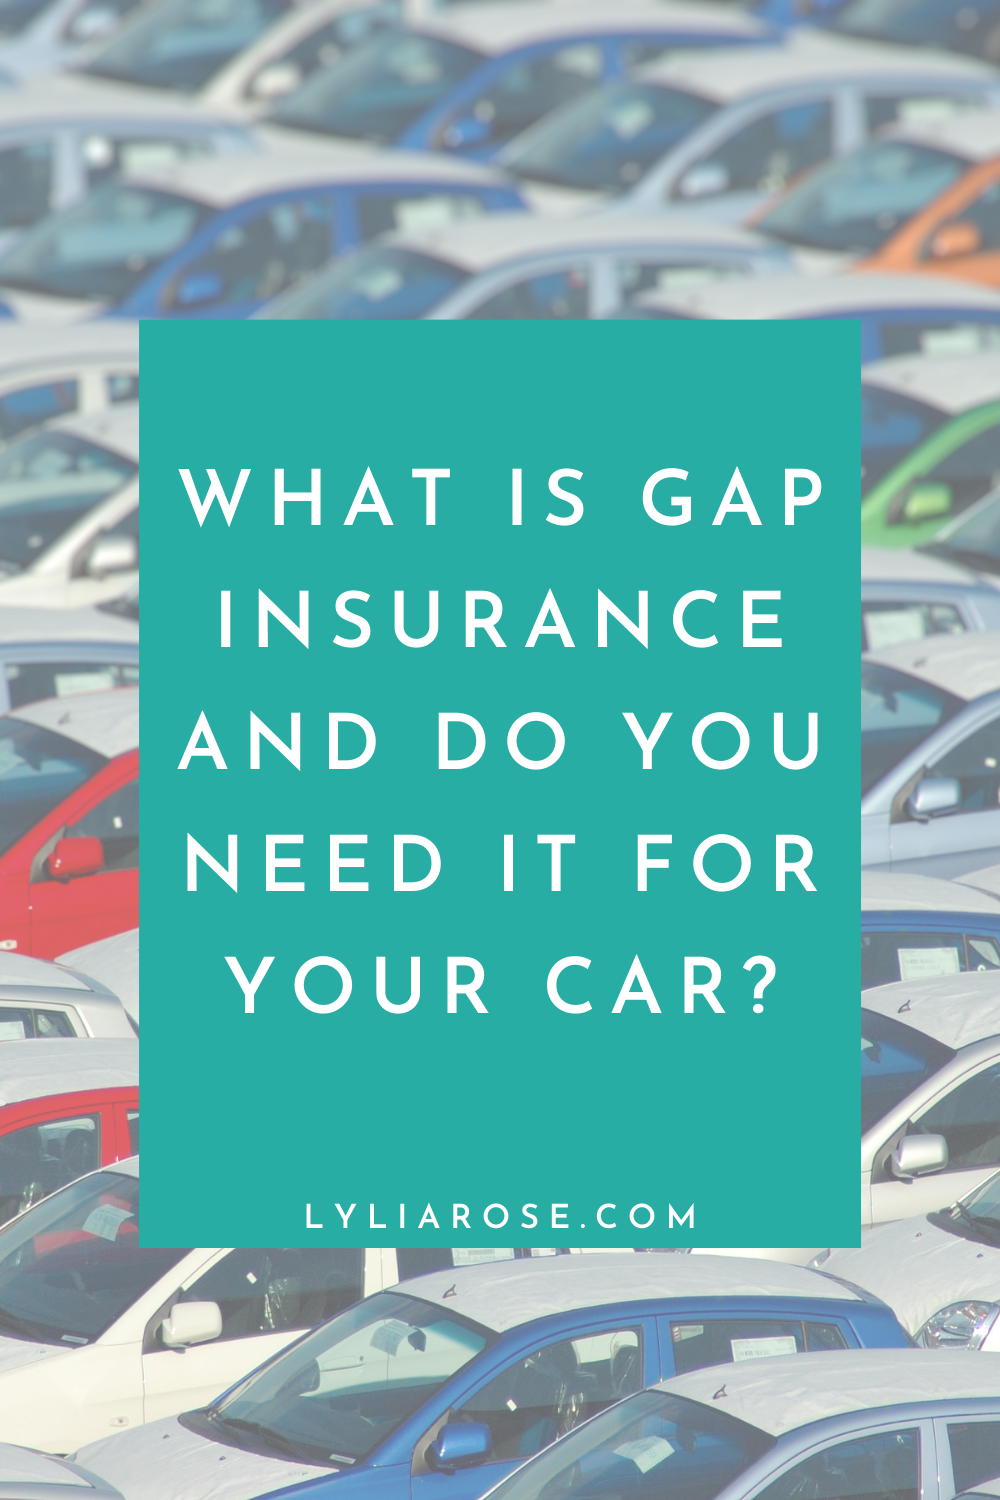 What is gap insurance and do you need it for your car